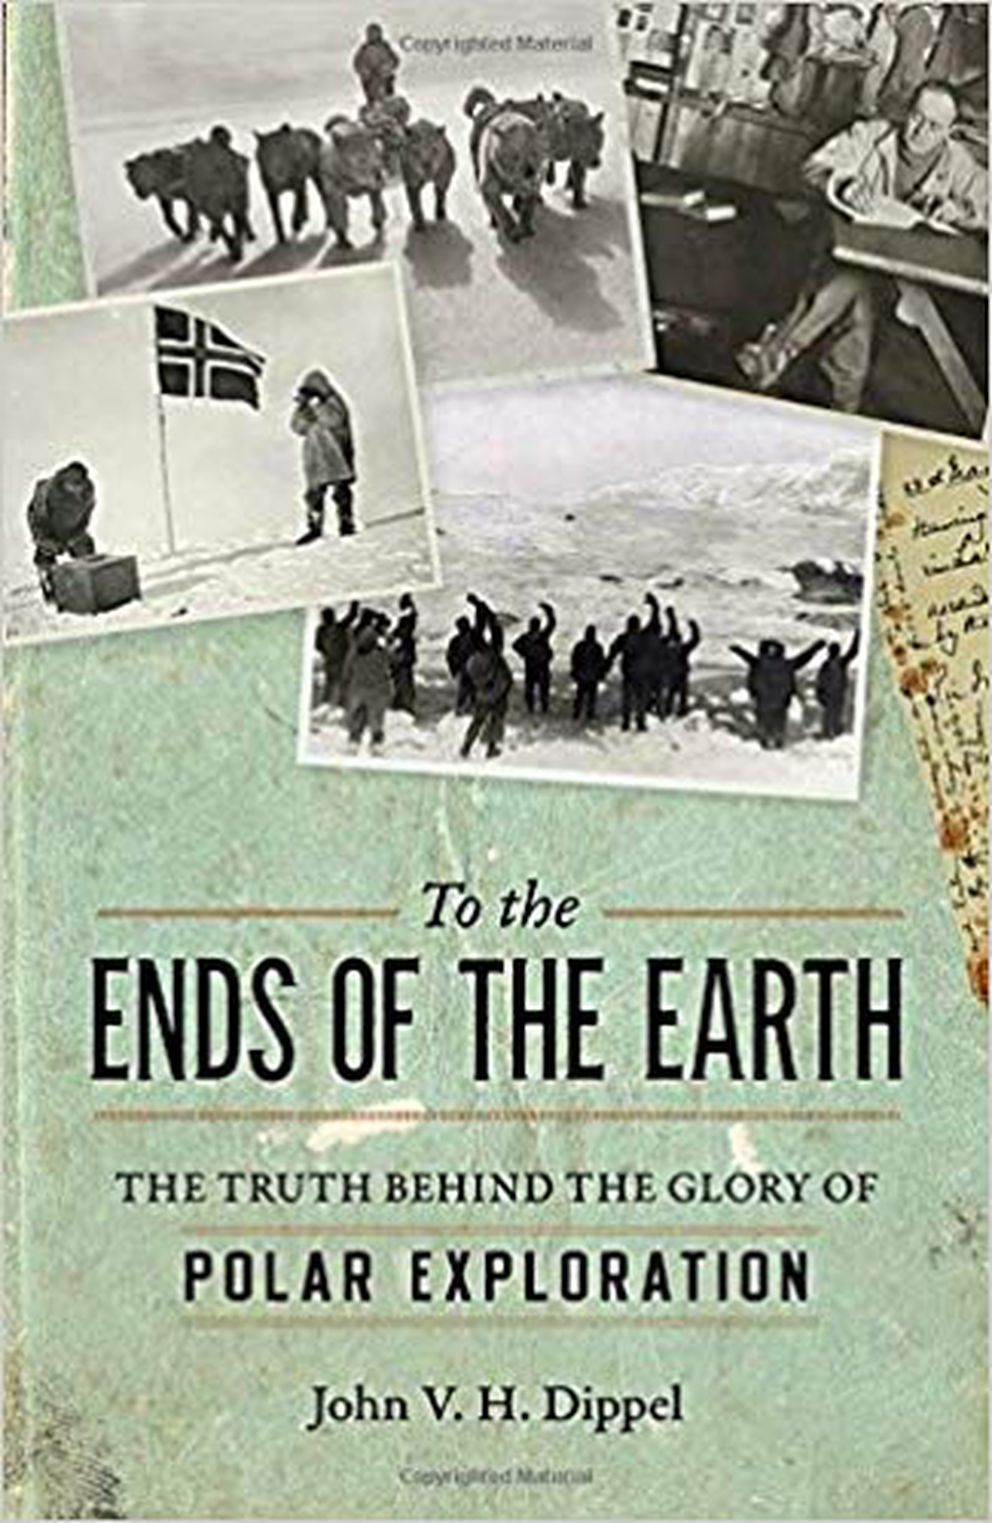 """To the Ends of the Earth: the Truth Behind the Glory of Polar Exploration,"" by John V.H. Dippel"